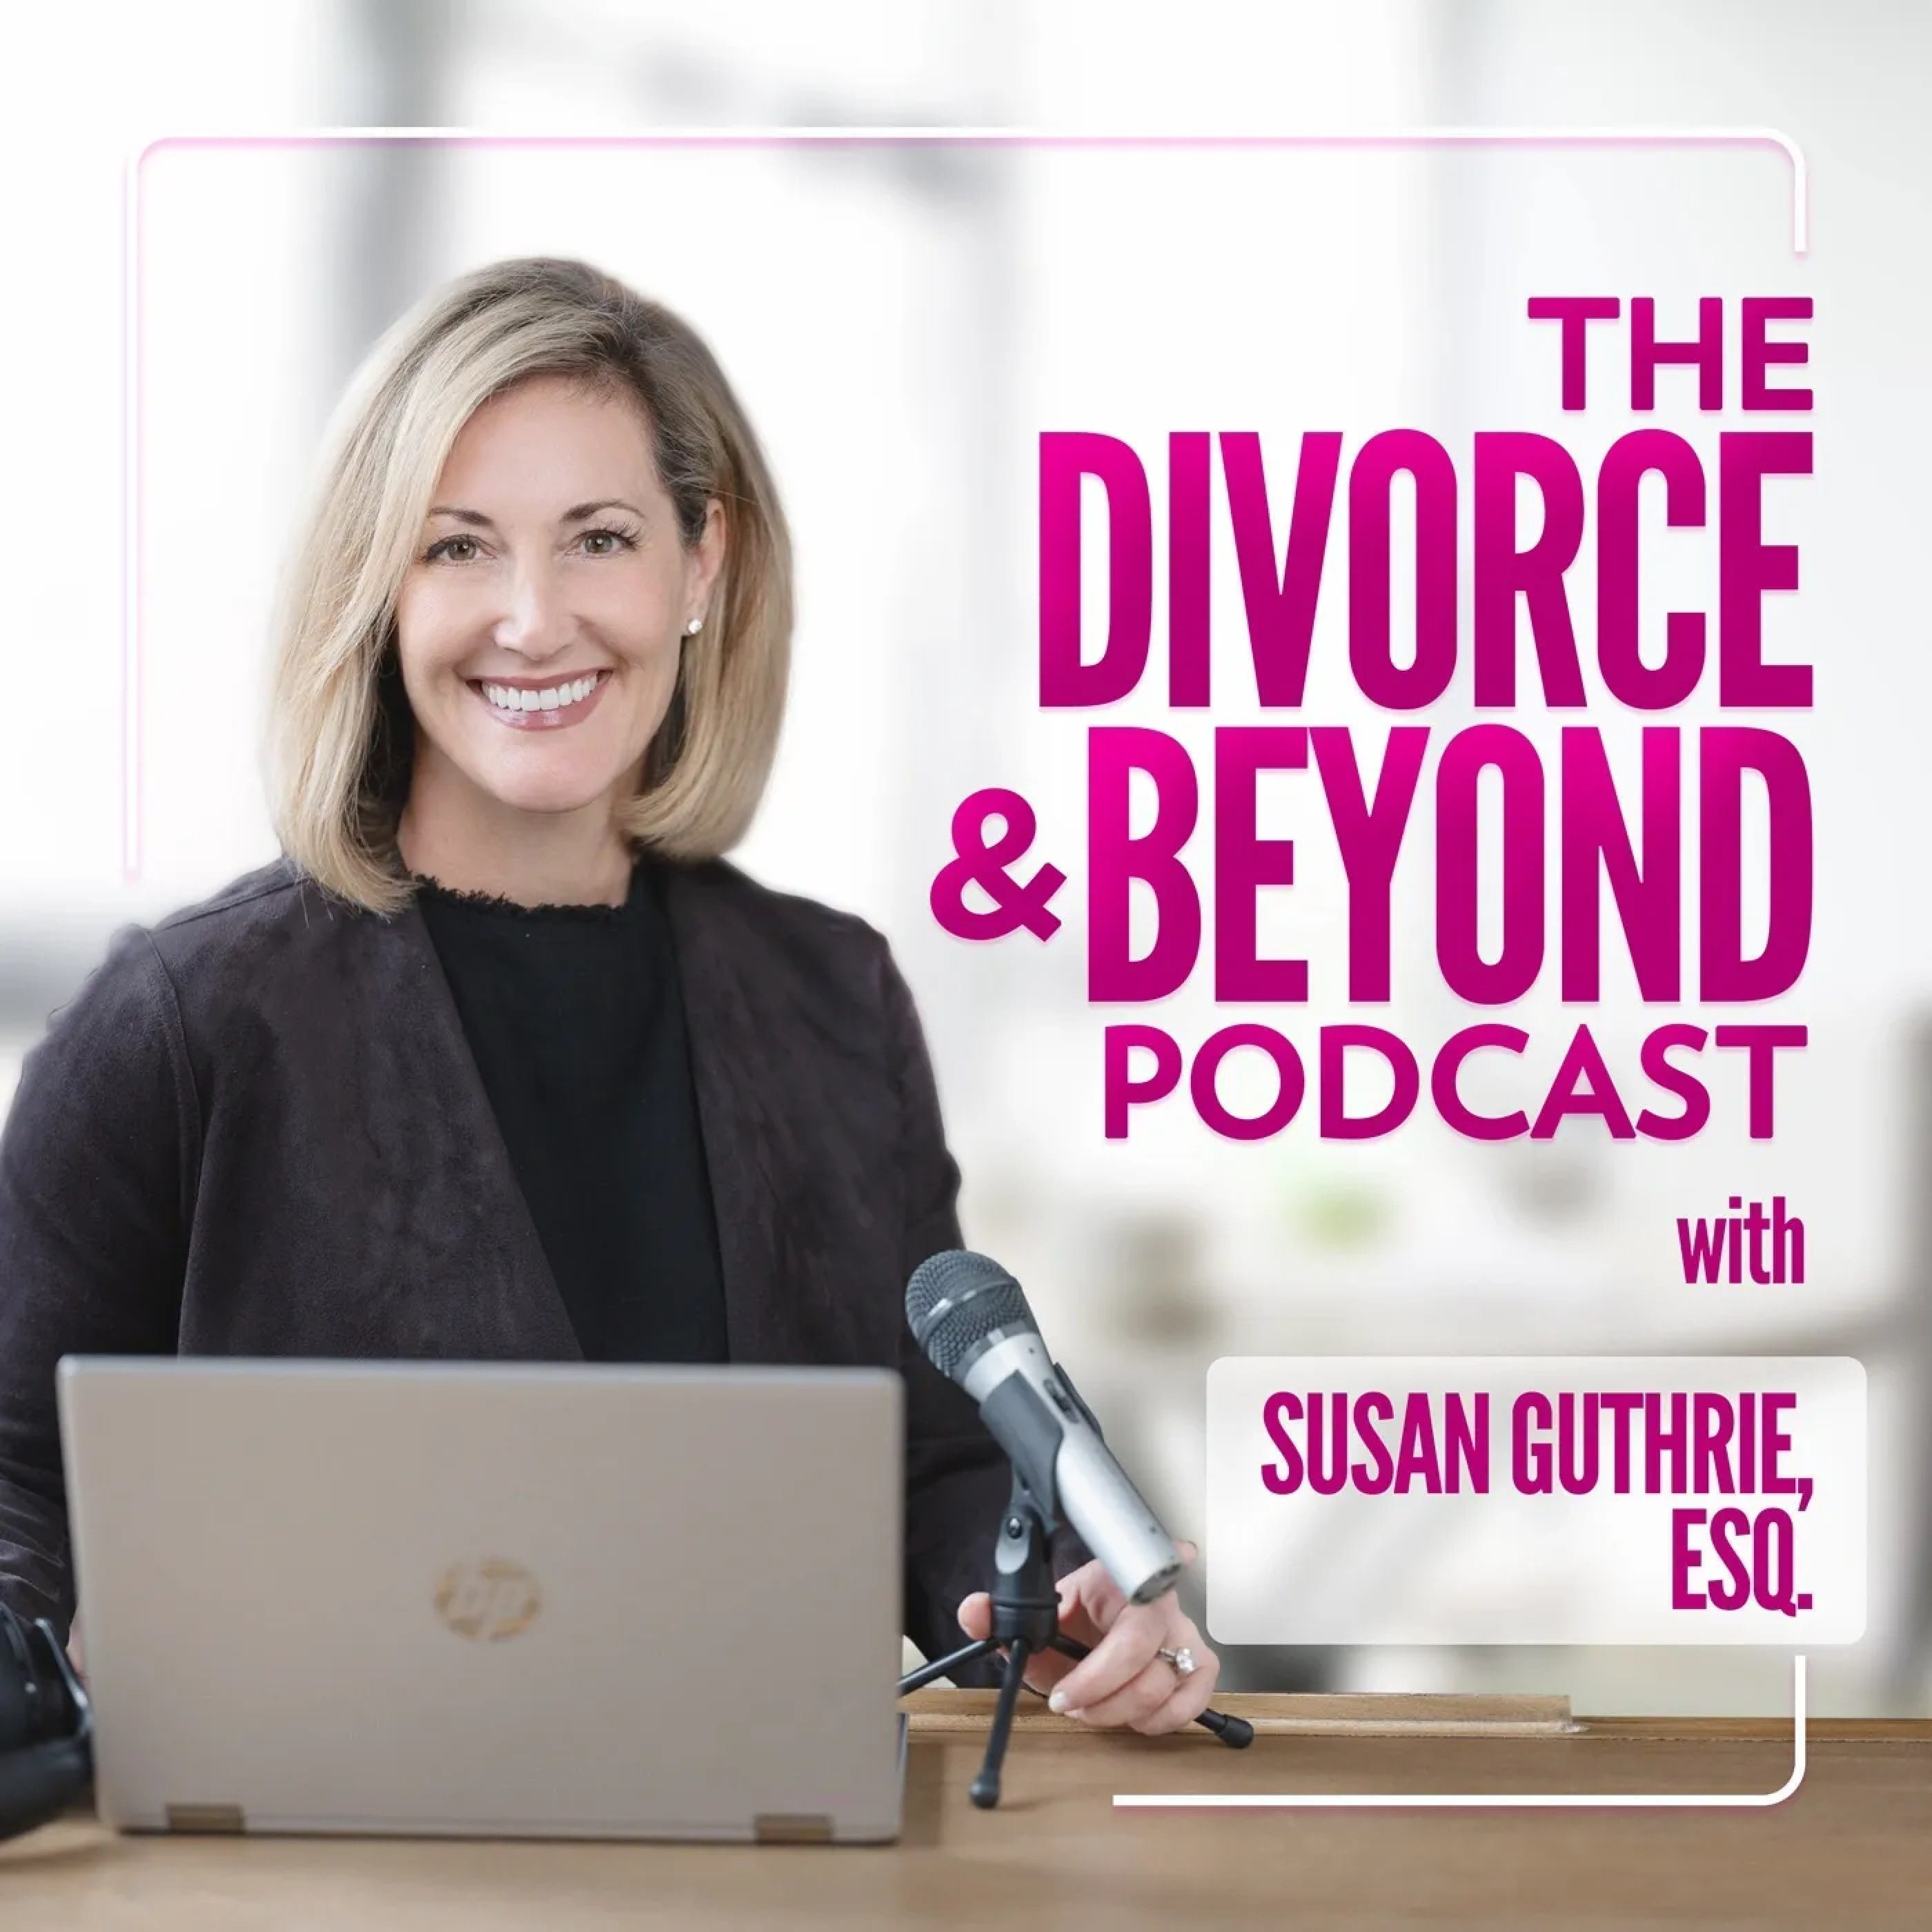 The-Divorce-And-Beyond-Podcast-with-Susan-Guthrie-ESQ@2x